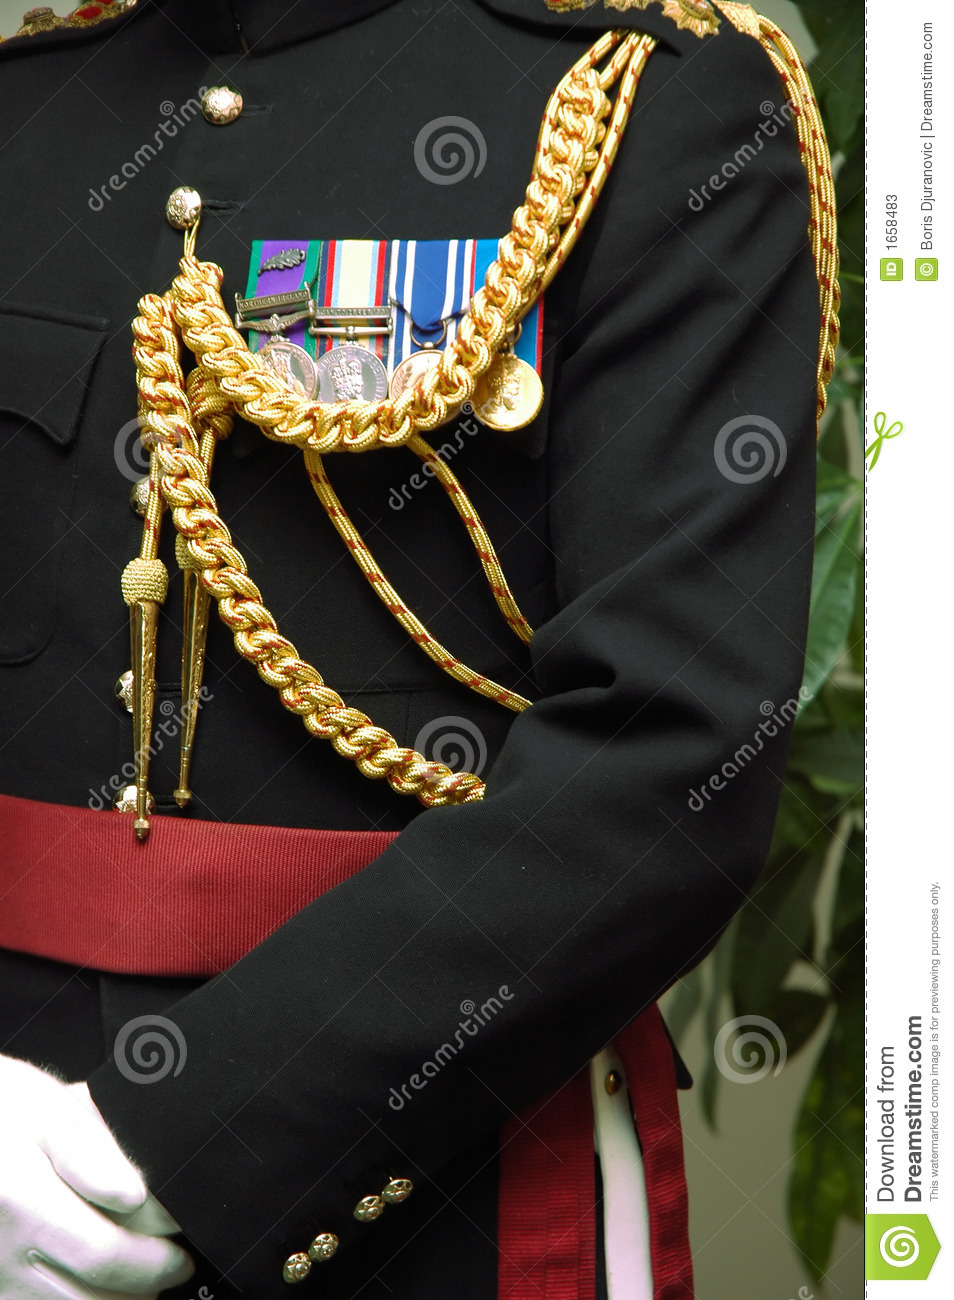 military decorations stock photos - Military Decorations